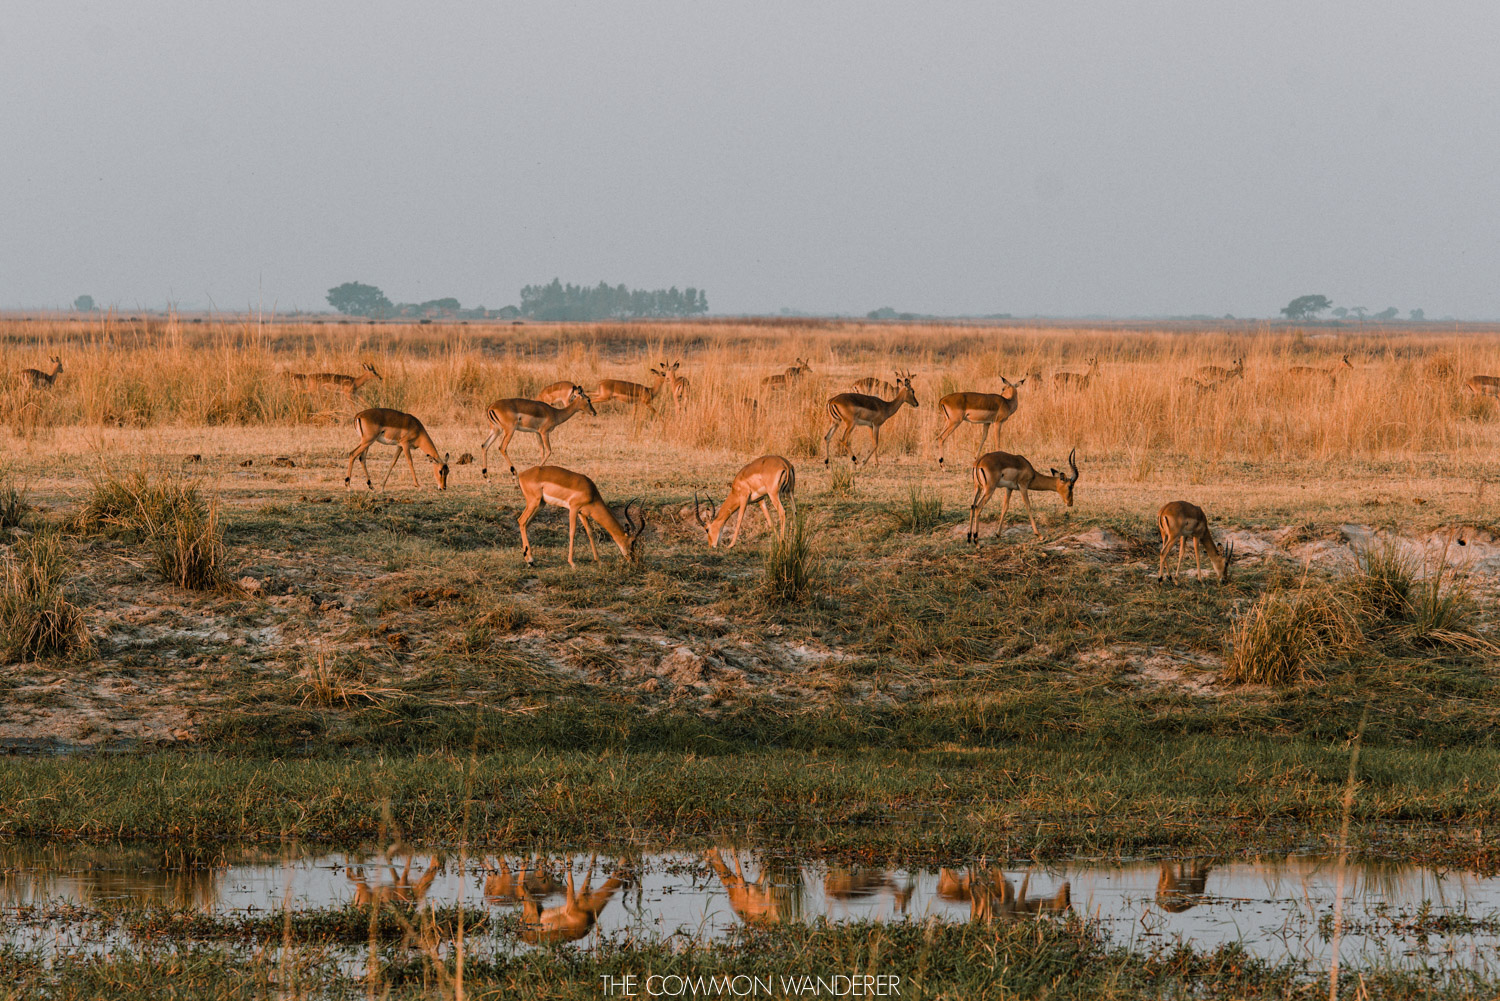 Animals graze in South Luangwa National Park, Zambia - The Common Wanderer